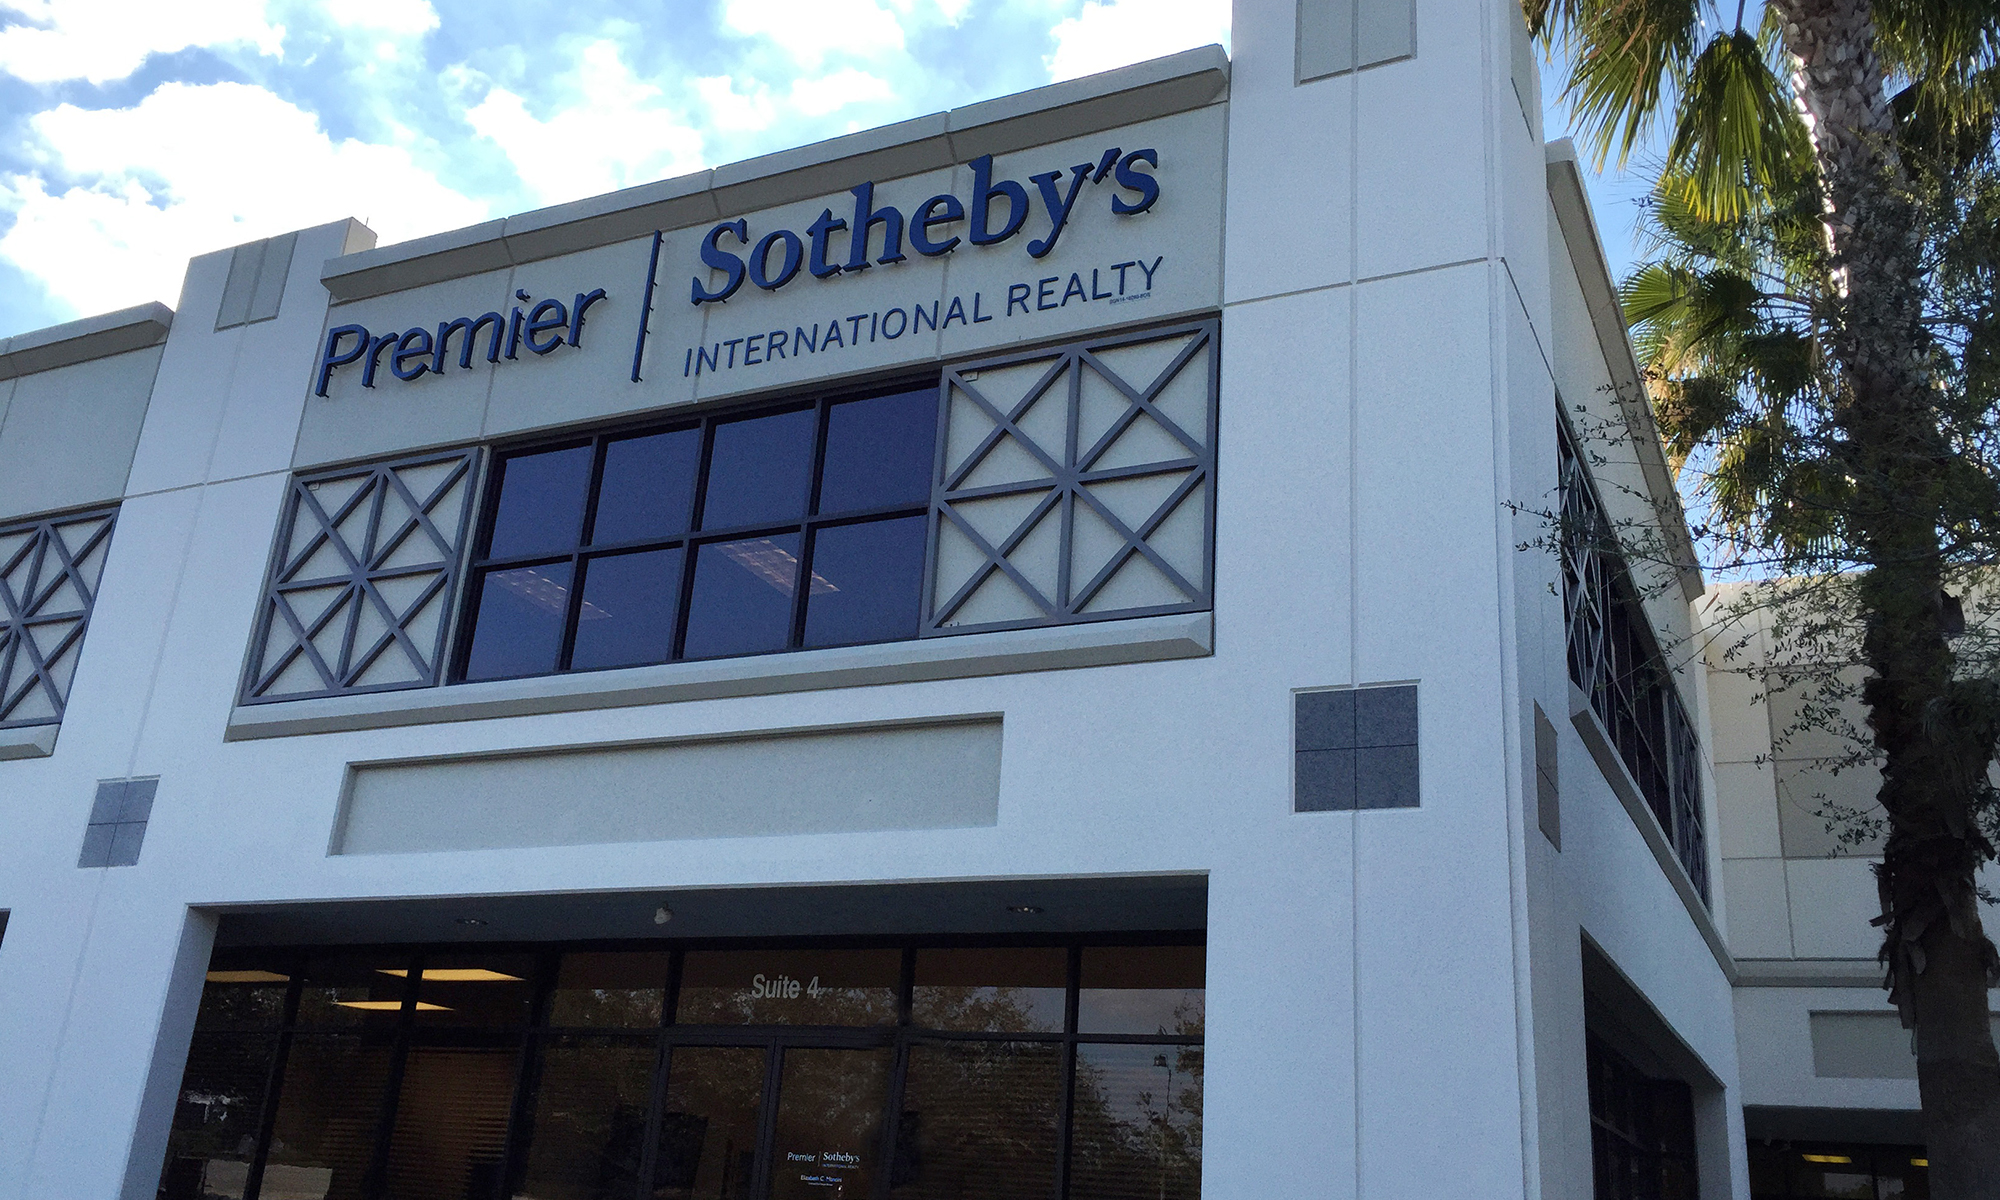 Premier Sotheby's International Realty Bonita Springs